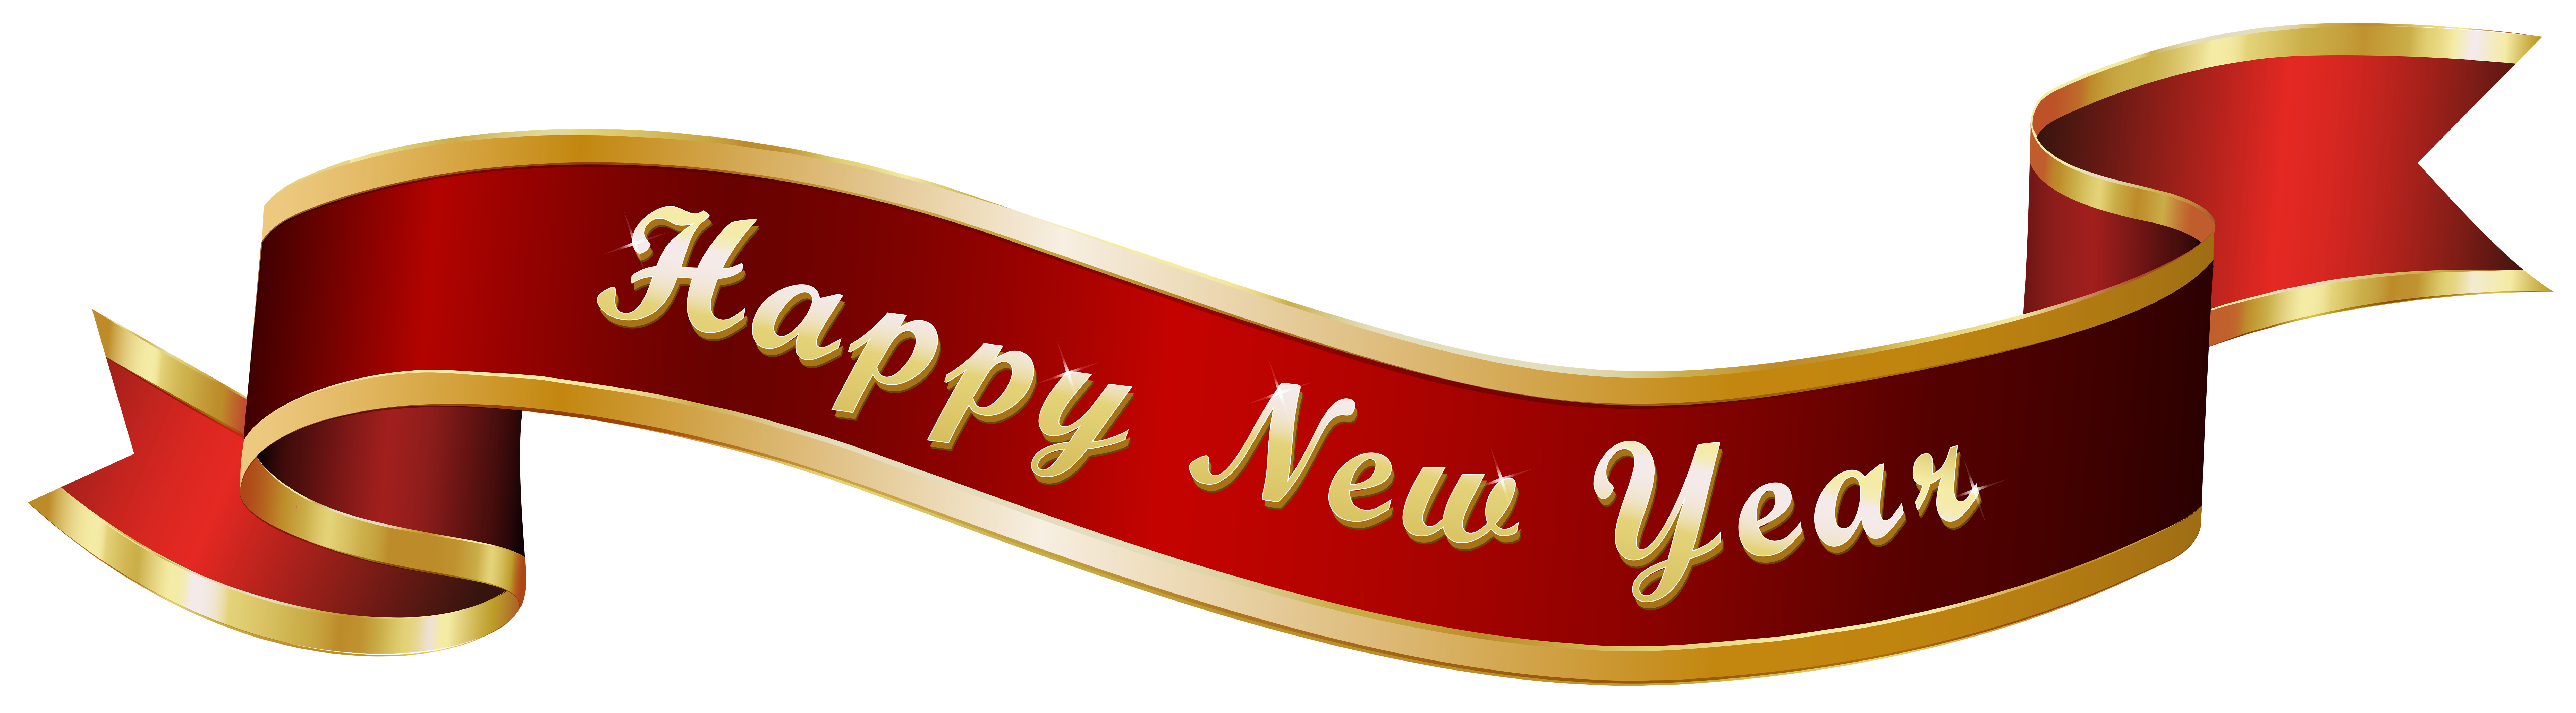 Art clipart transparent. Happy new year banner